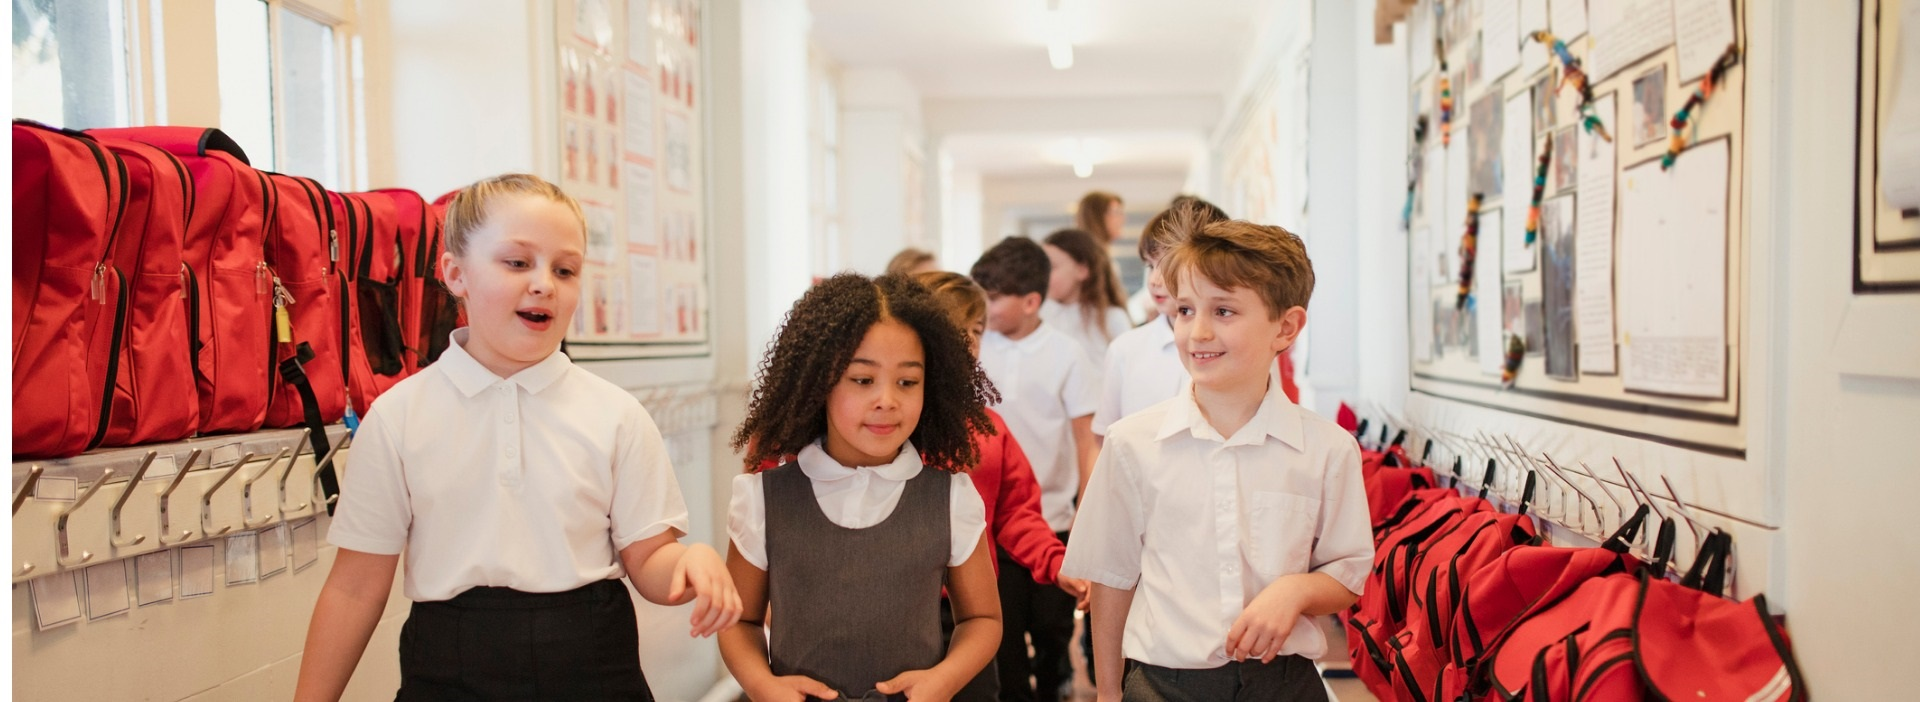 images/Page-width-banners/Ext-Banners-1920x622/school-children-walk-through-the-corridor-picture-id1007218540_1920_x_702.jpg